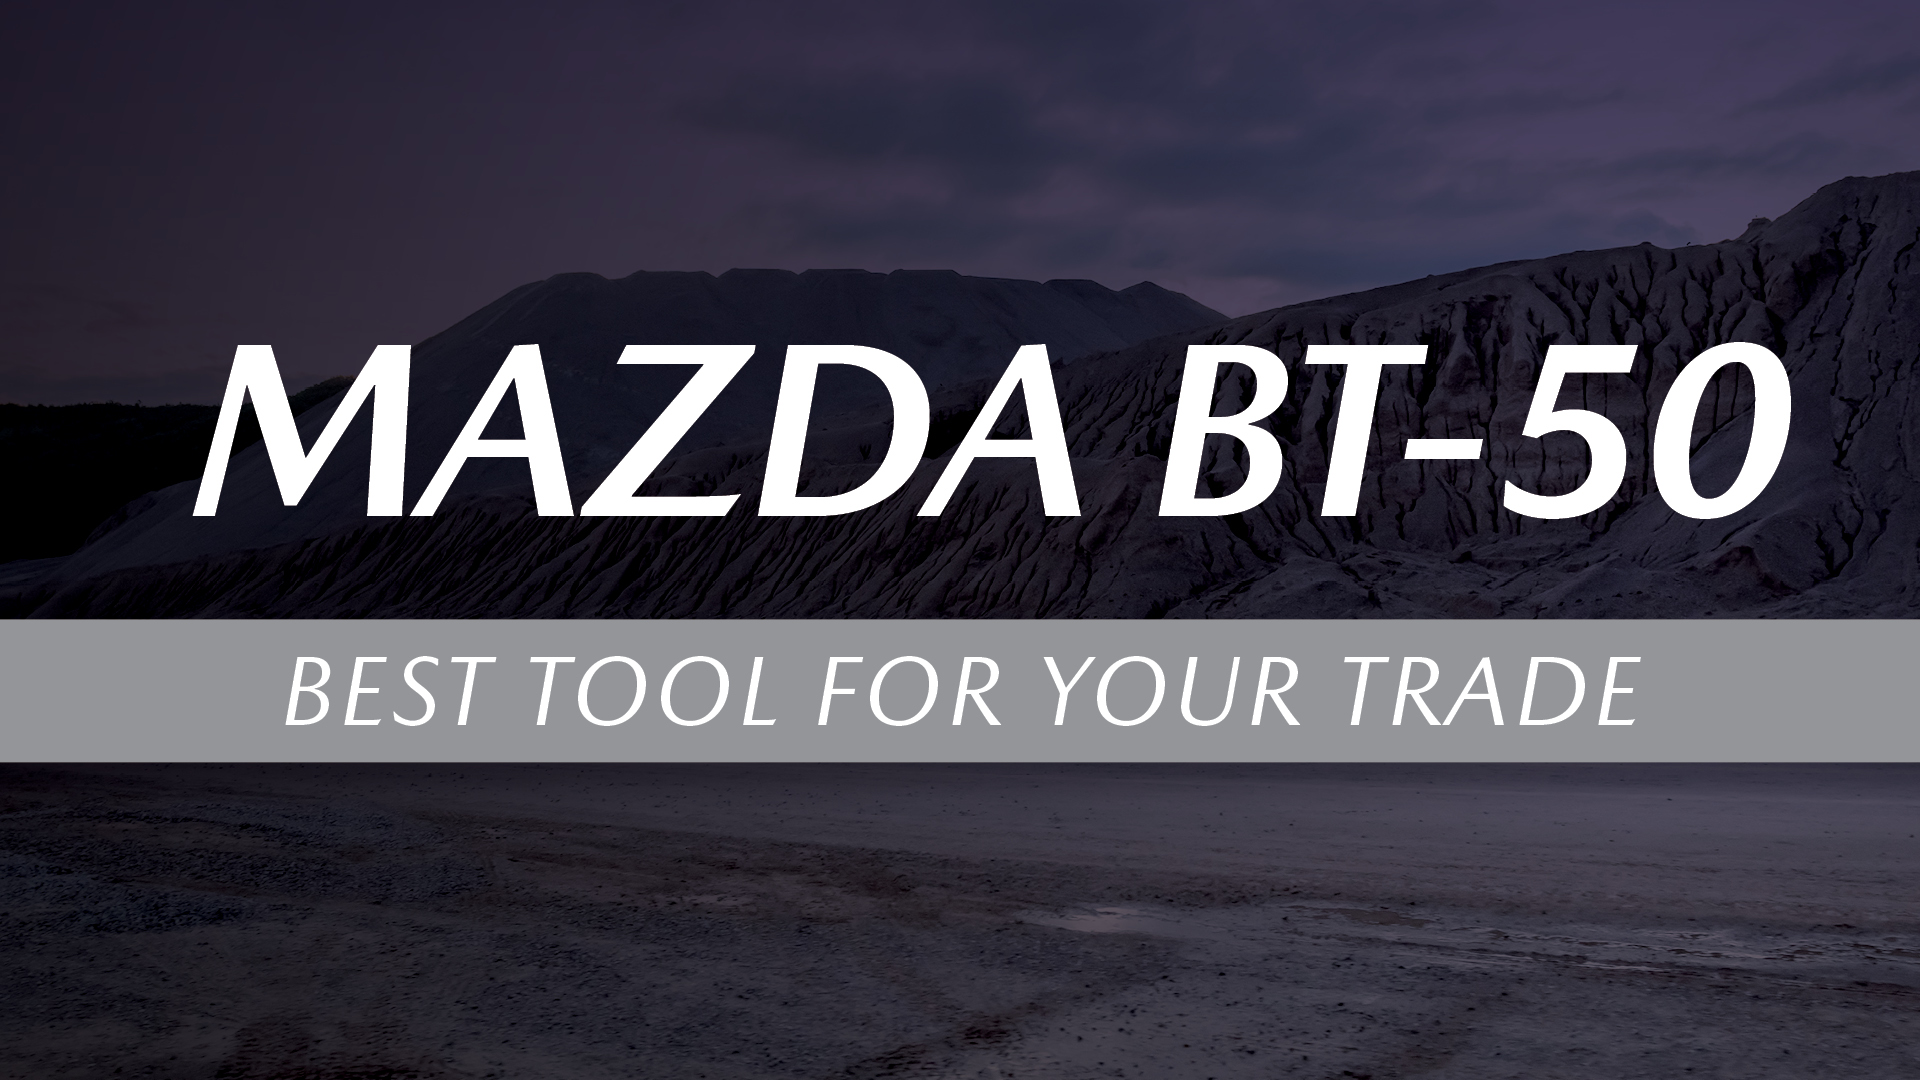 Best Tool for your trade